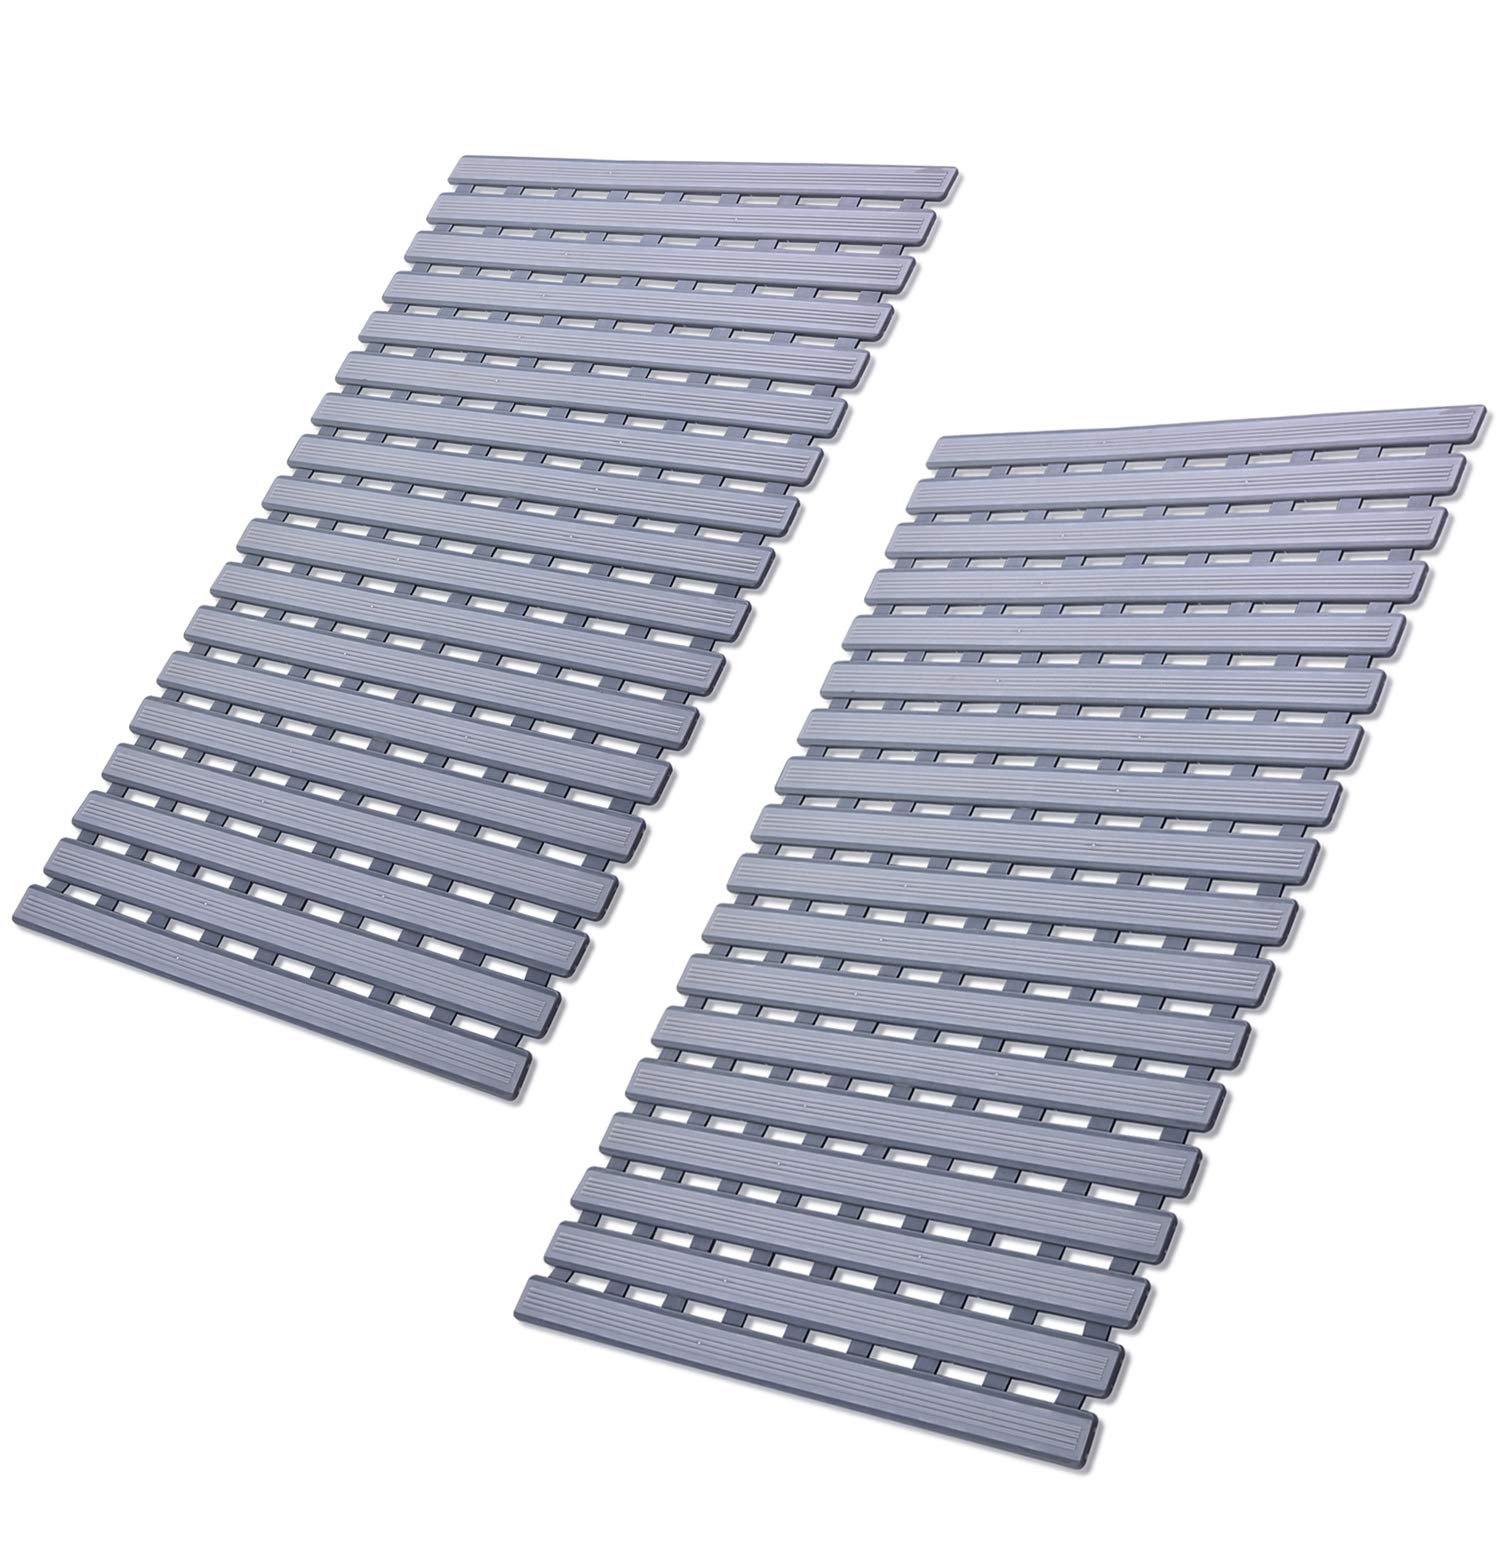 2deca0974534 Non Slip Shower Floor Mat with Drain Hole by ifrmmy- Anti-Slip and Mold